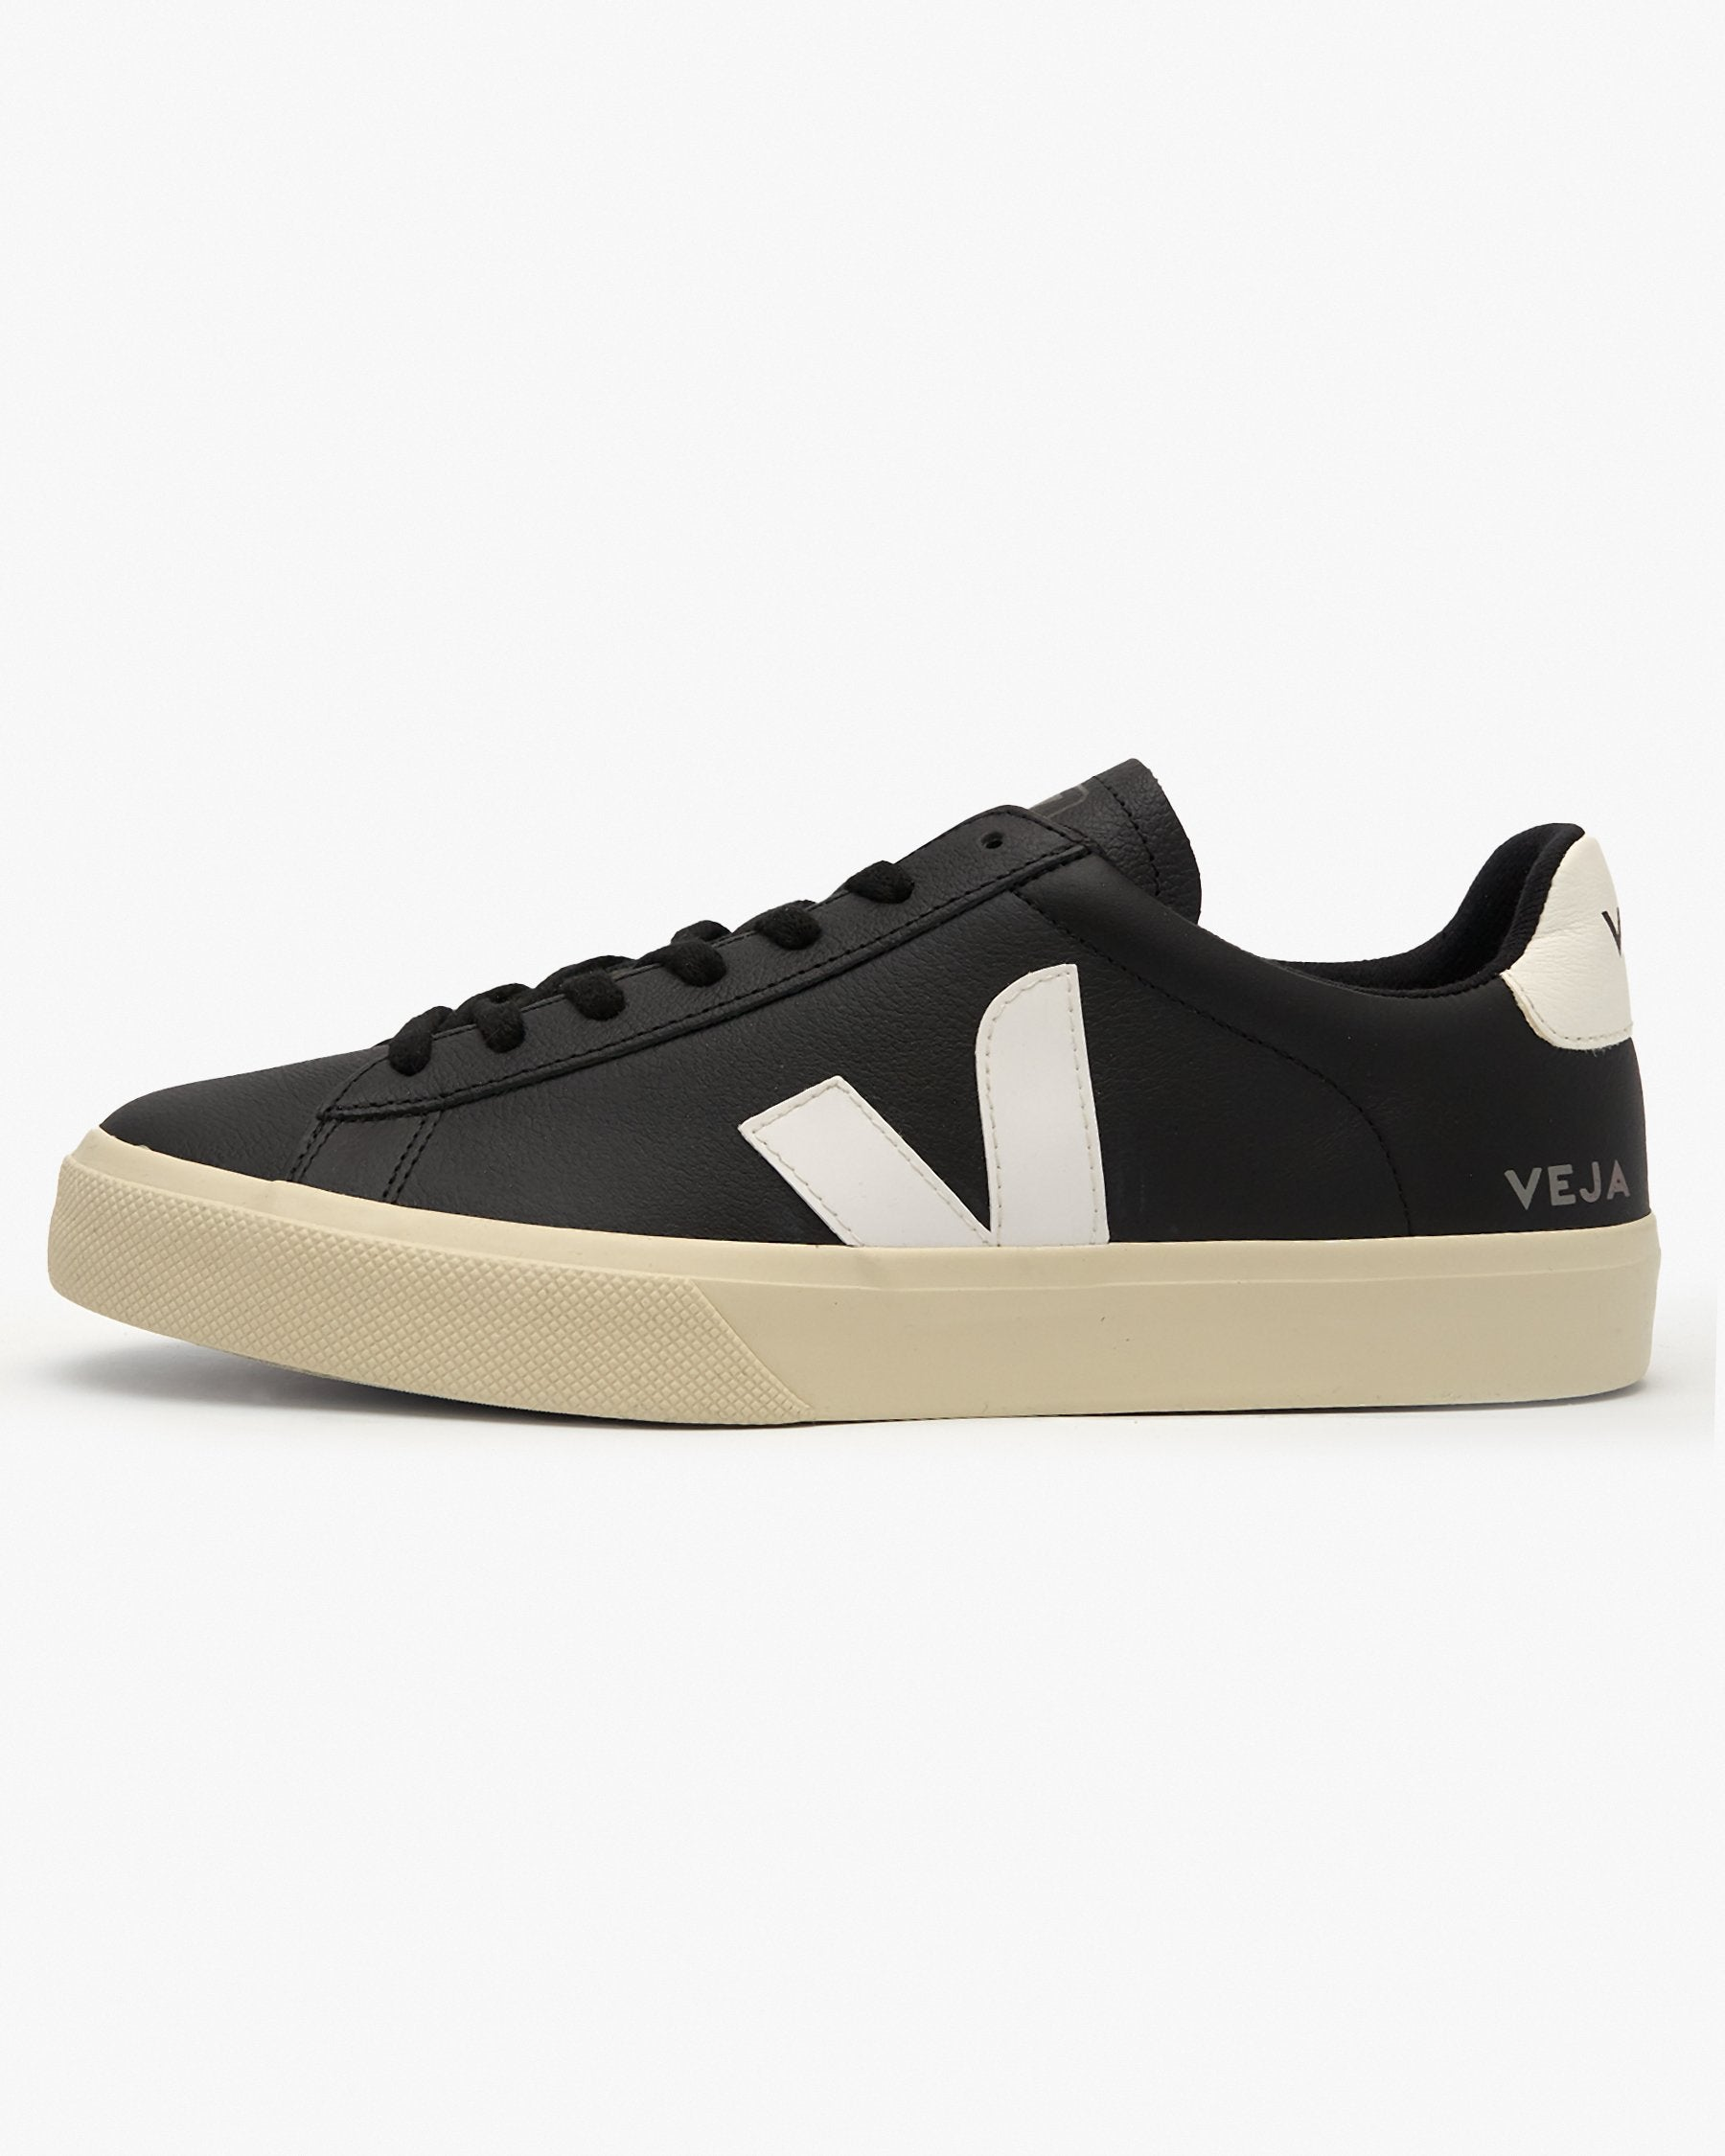 Veja Campo Chromefree Leather Sneakers - Black / White UK 7 CP051215B7 3611820005471 Veja Trainers